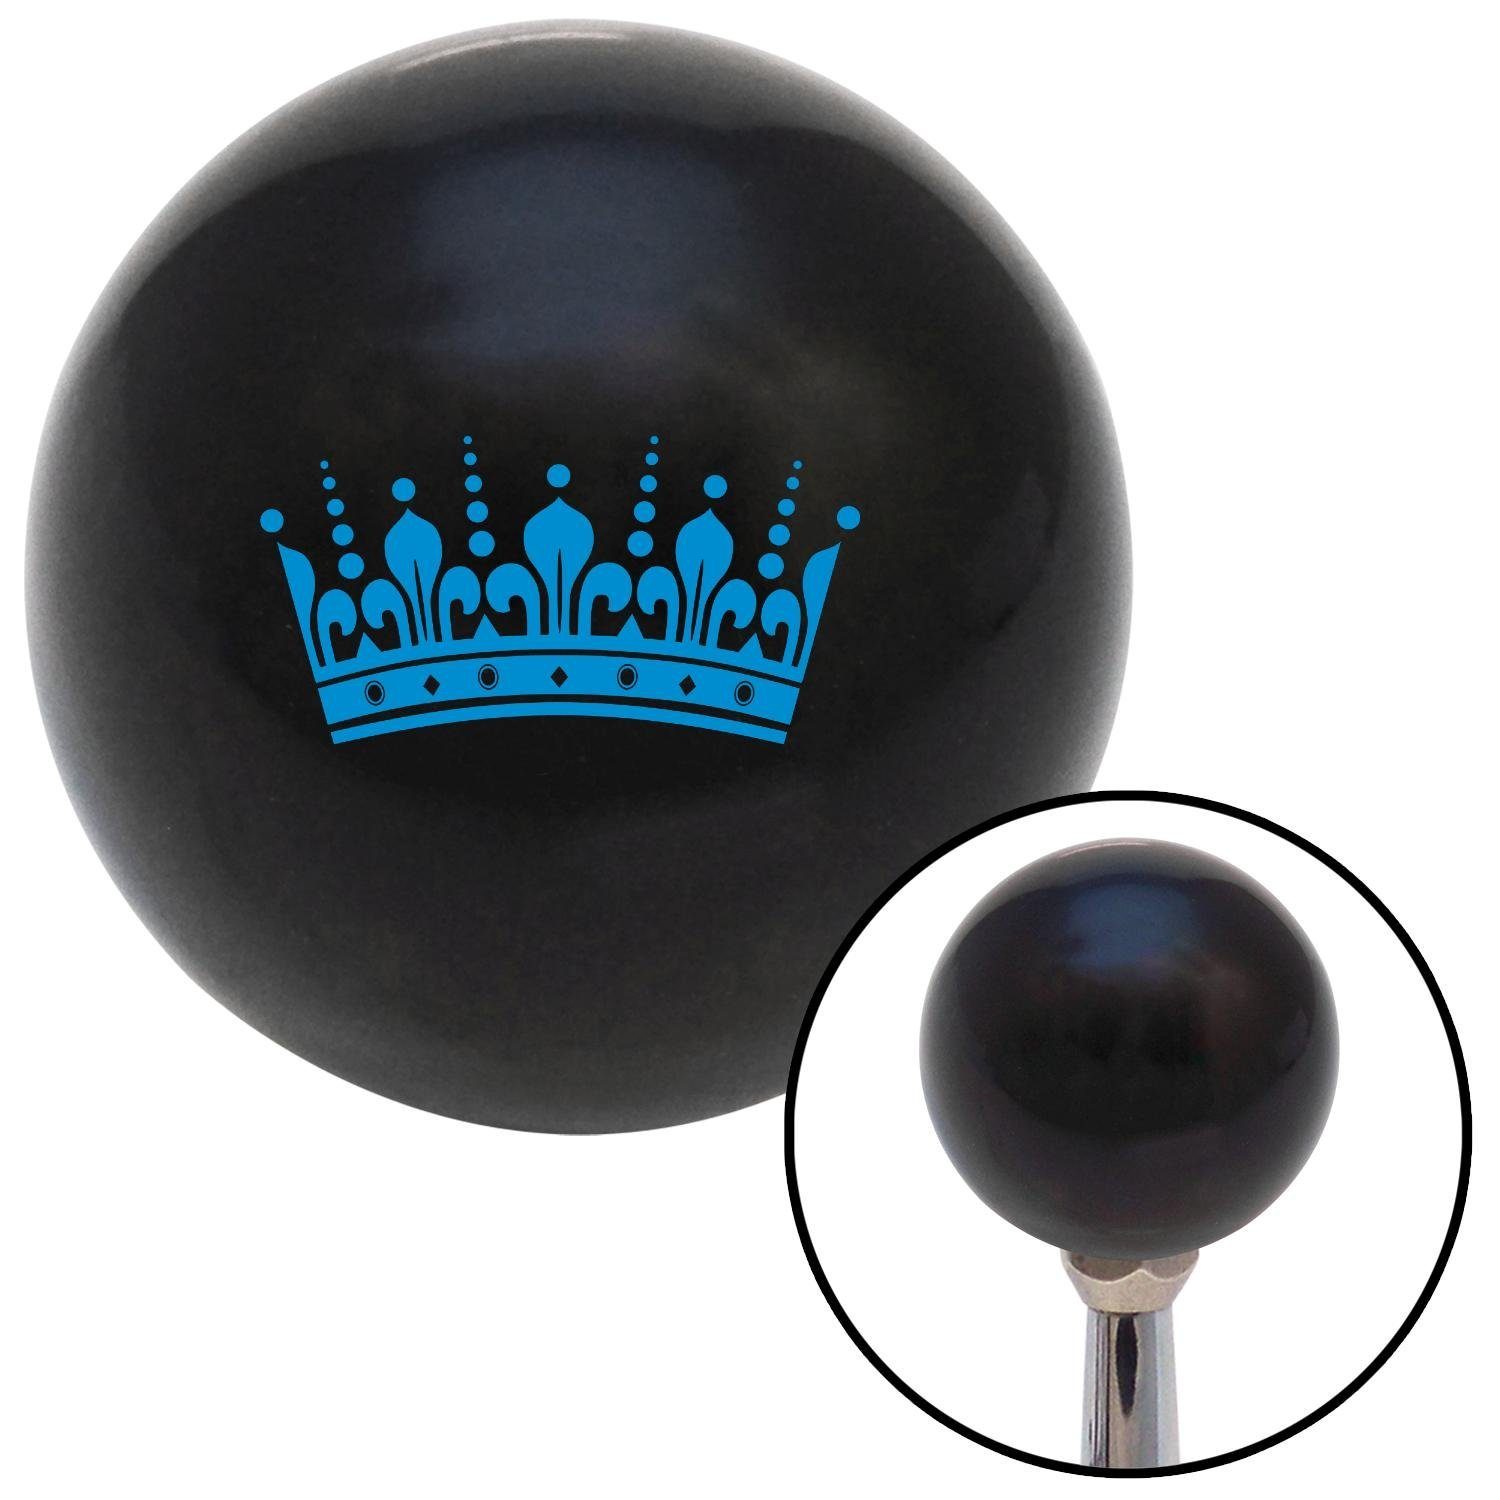 American Shifter 104624 Black Shift Knob with M16 x 1.5 Insert Blue Kings Crown